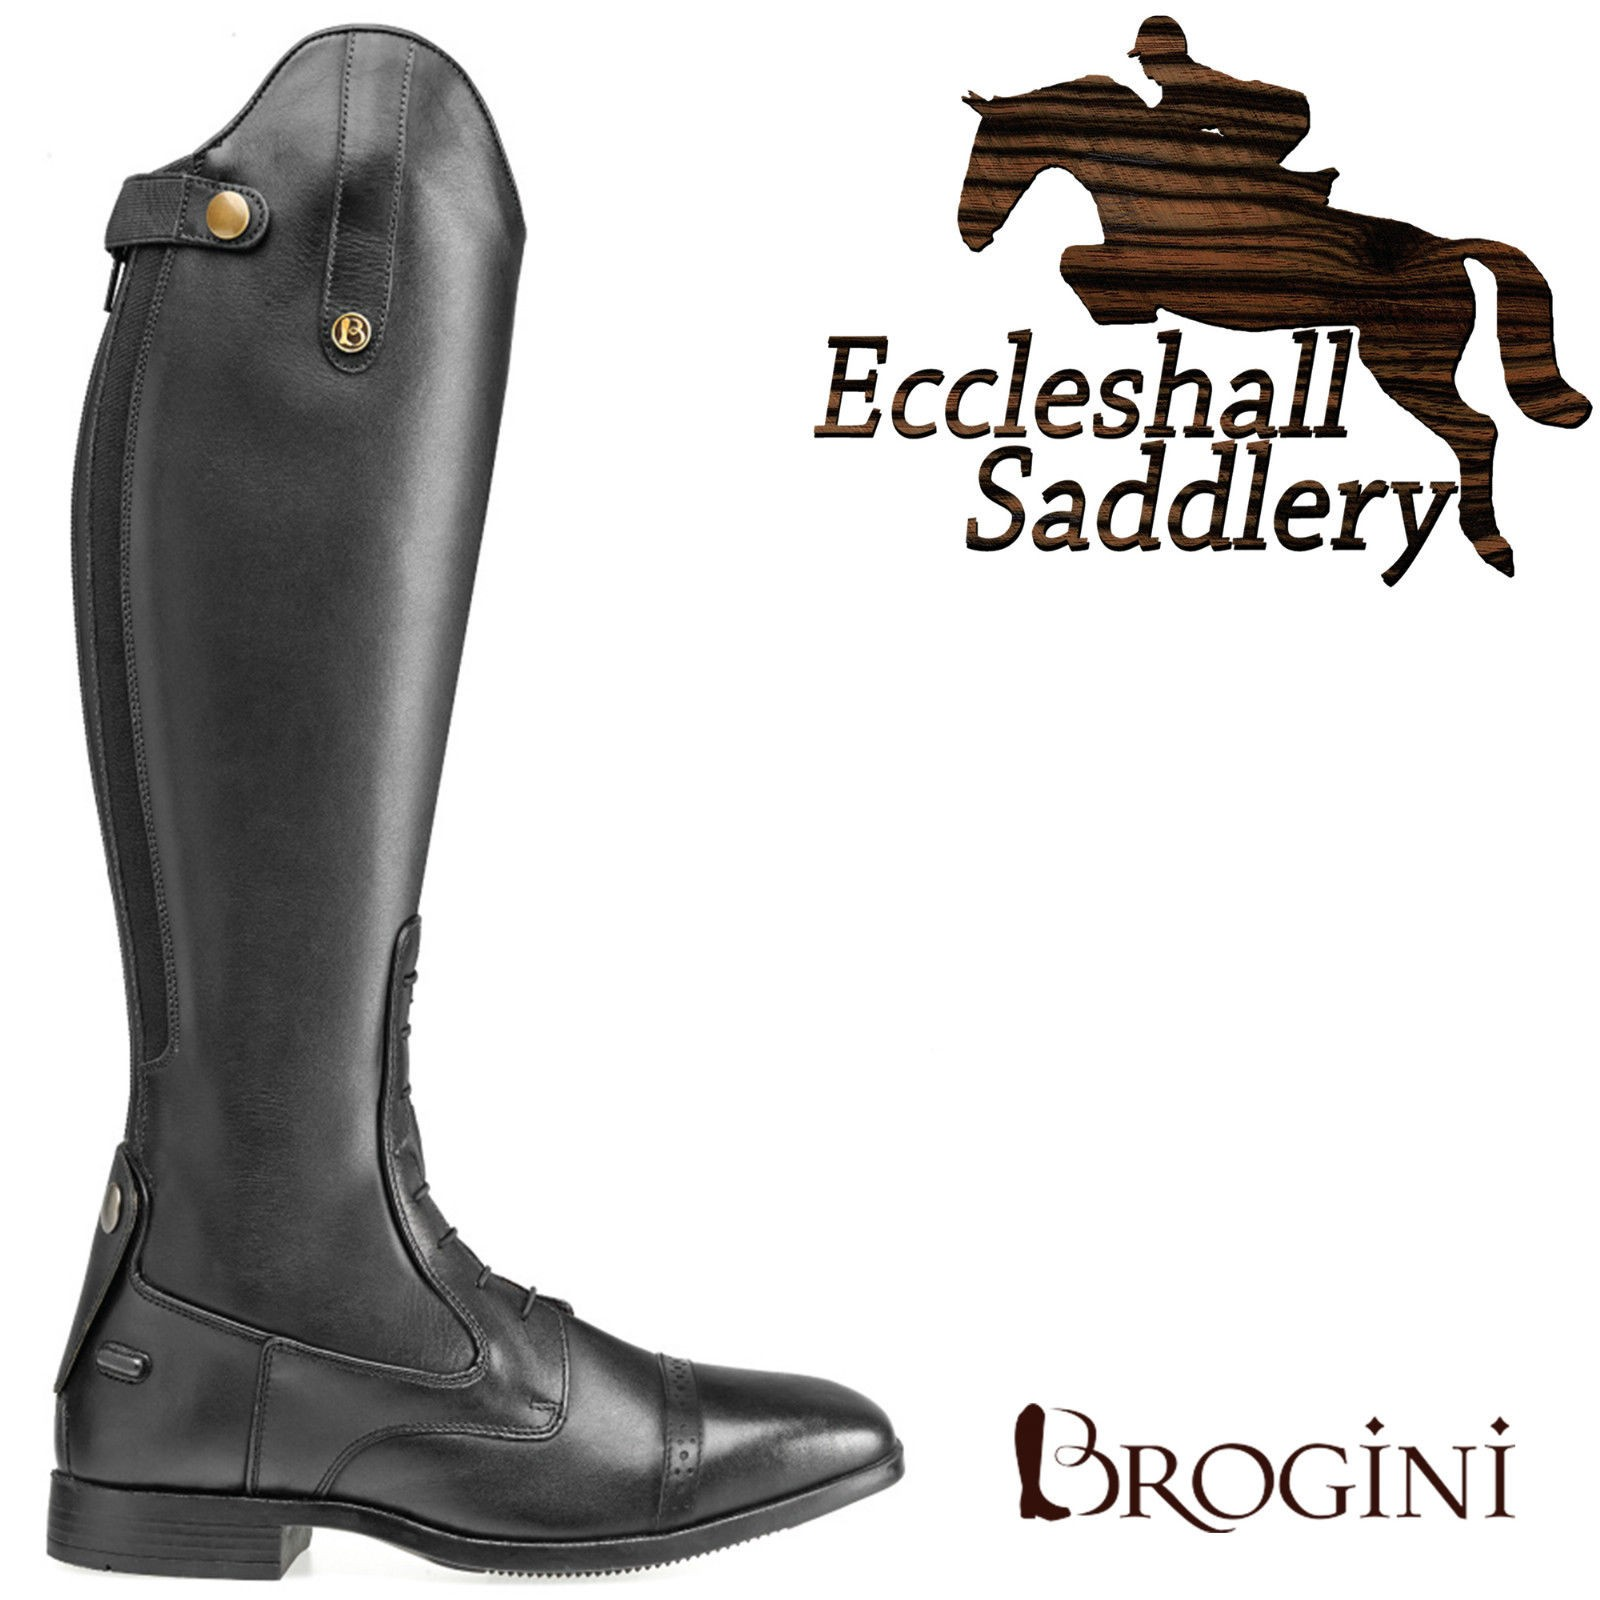 Brogini Capitoli 1412 Long Riding Boots Was £150